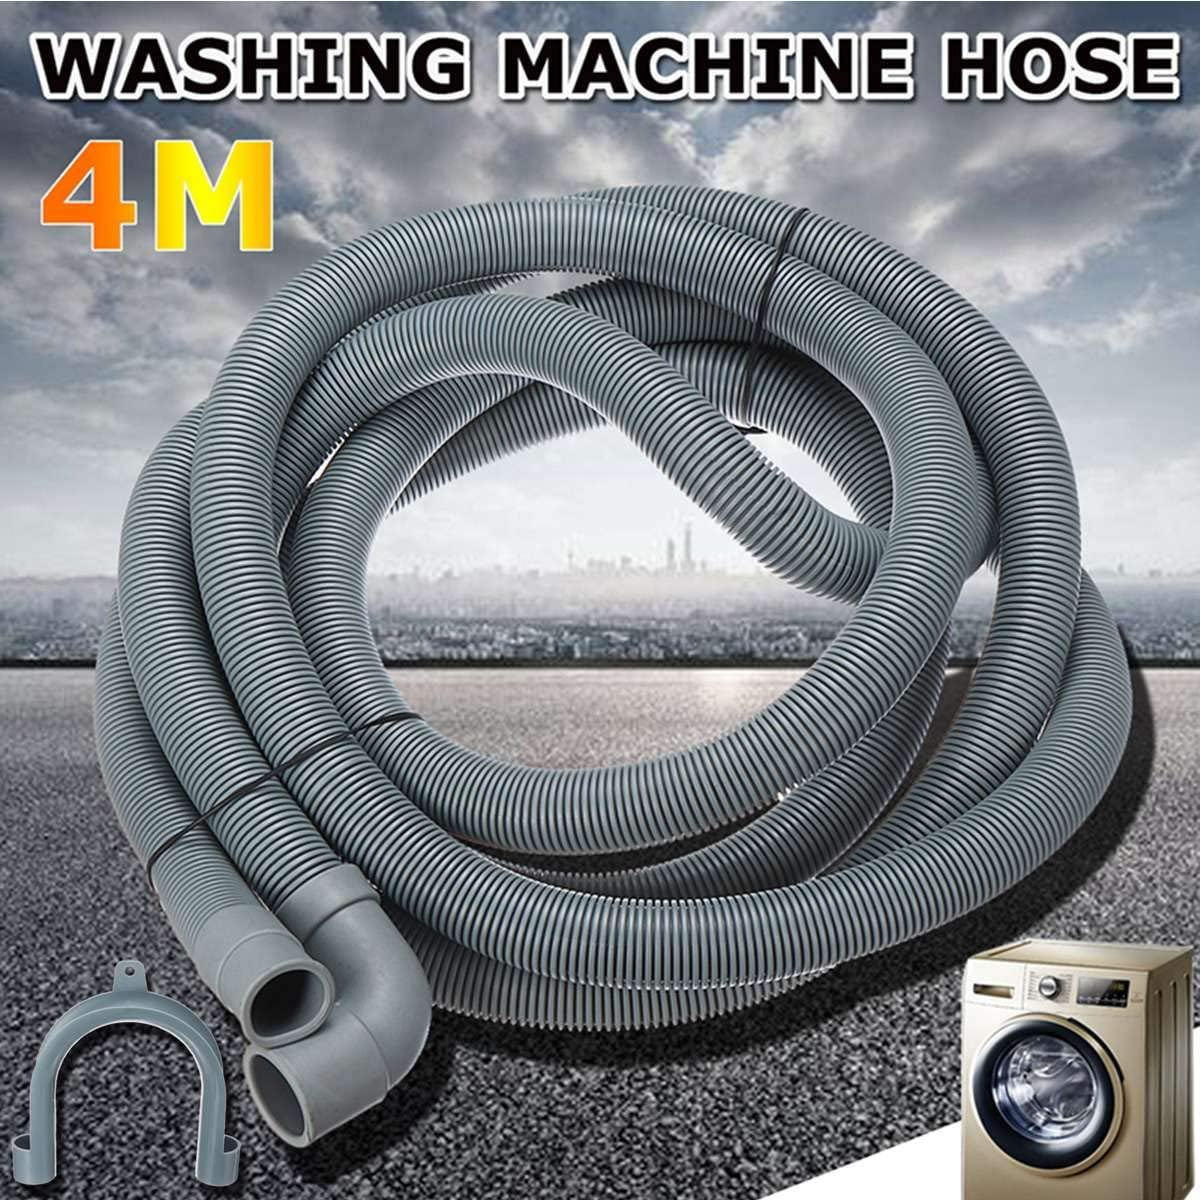 Leonid Wash Machine Dishwasher Drain Hose Outlet Water Pipe Flexible Extension With